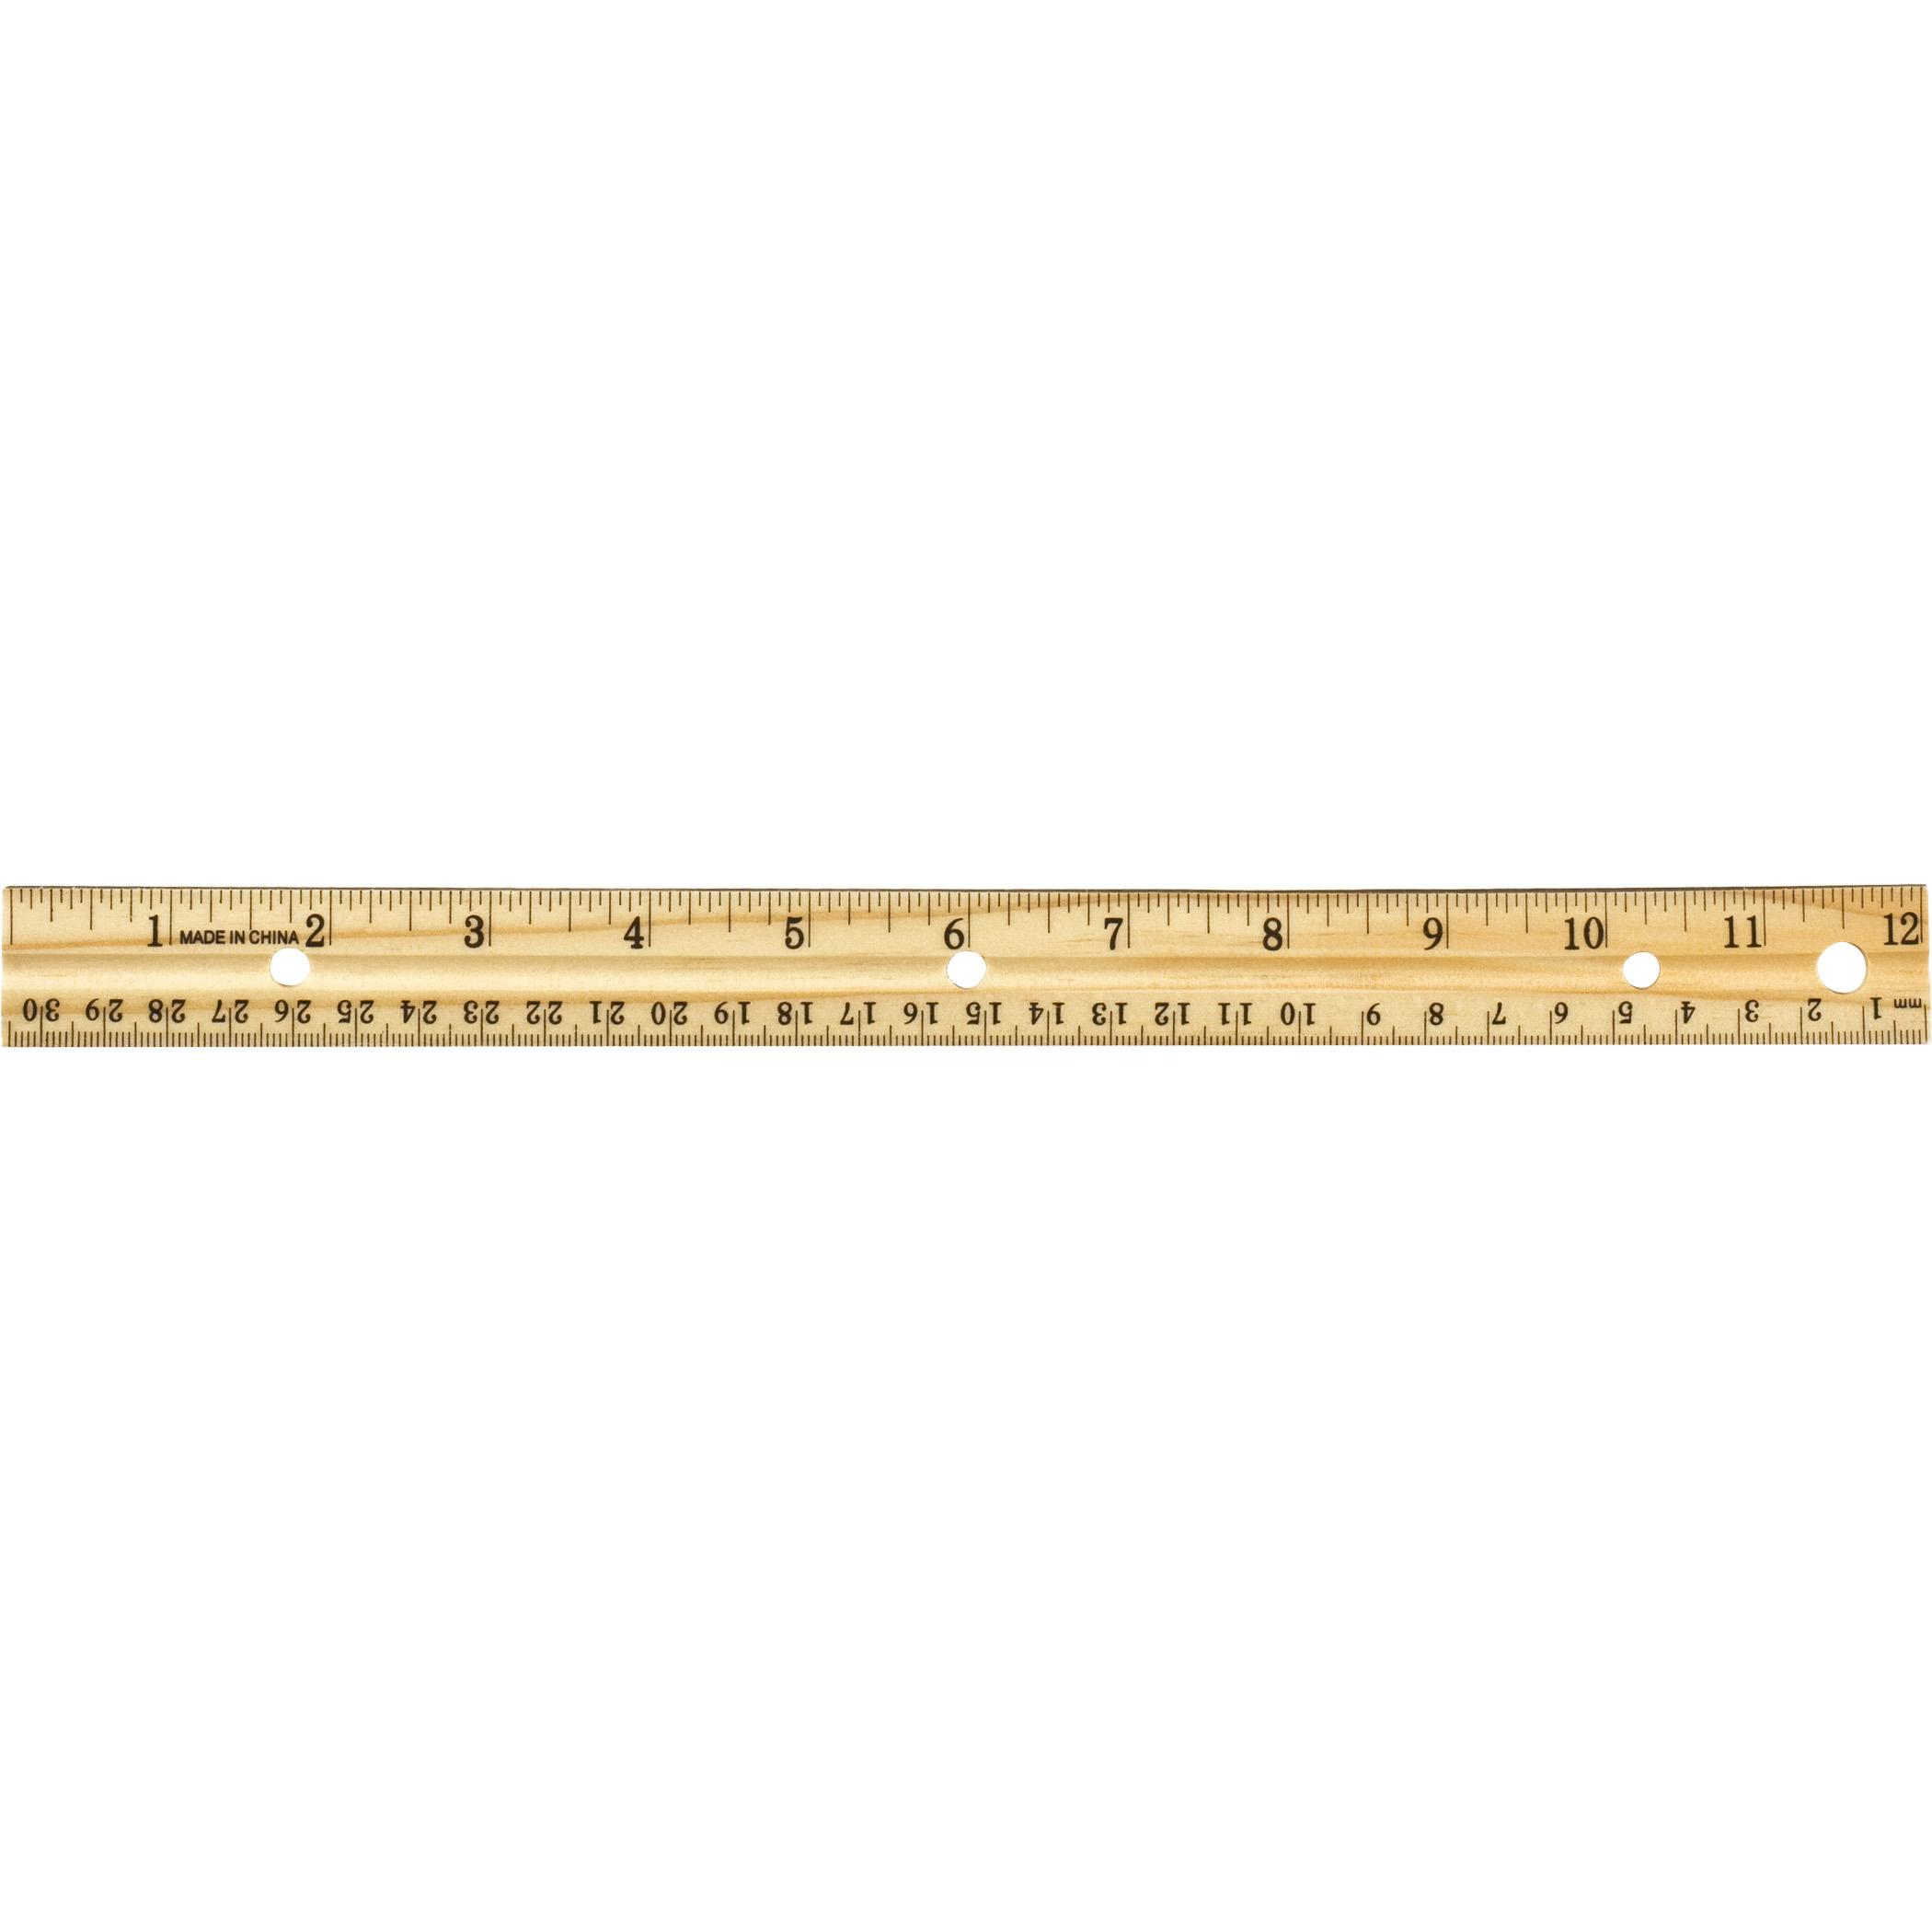 amazoncom officemate oic 12inch wood ruler box of 12